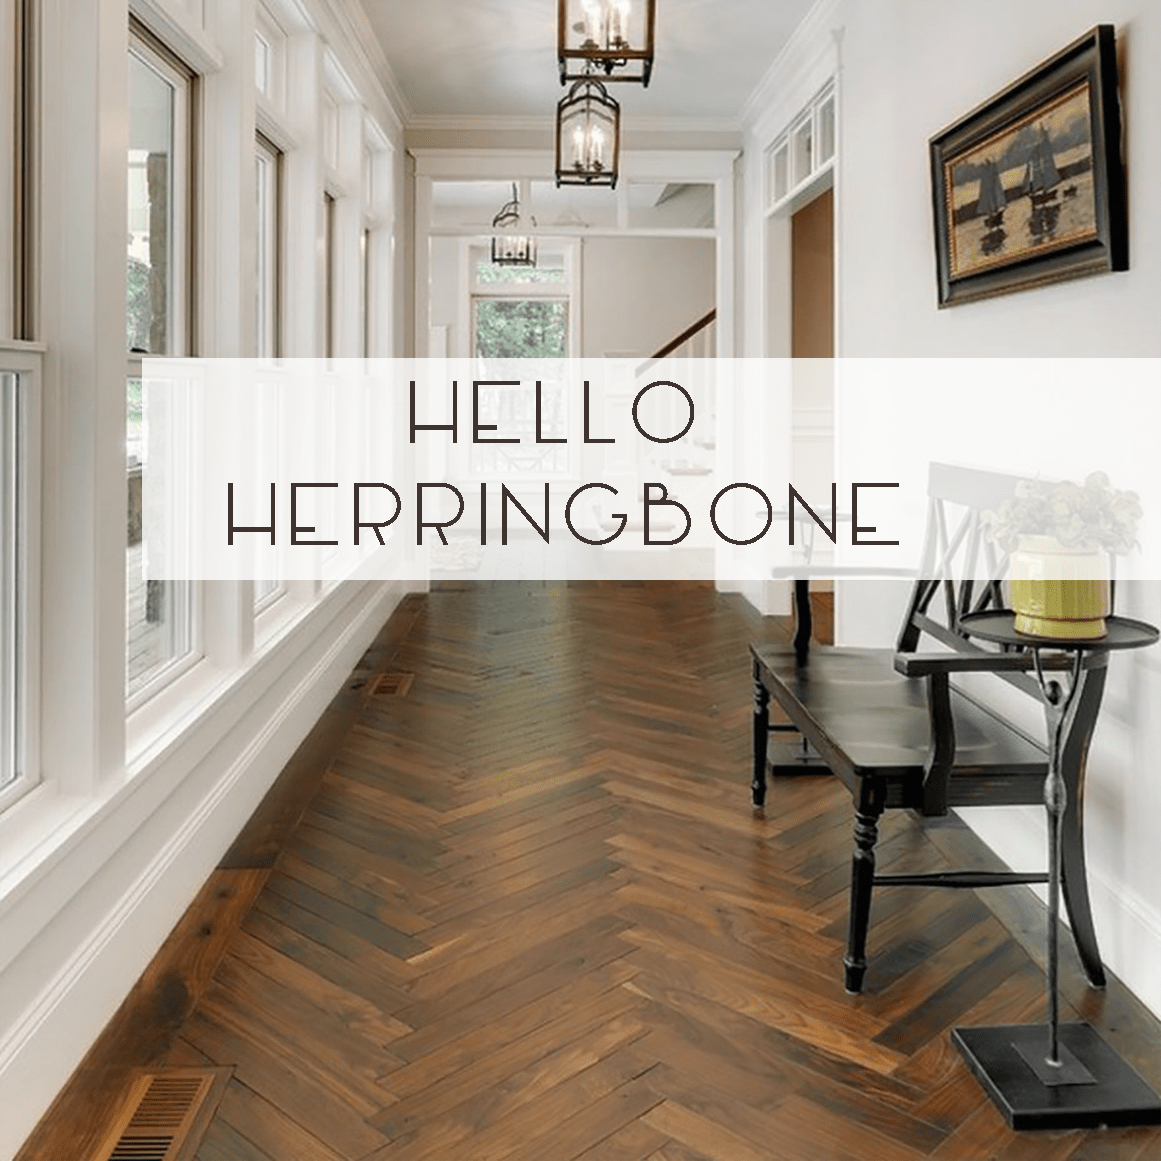 Herringbone Flooring Ideas